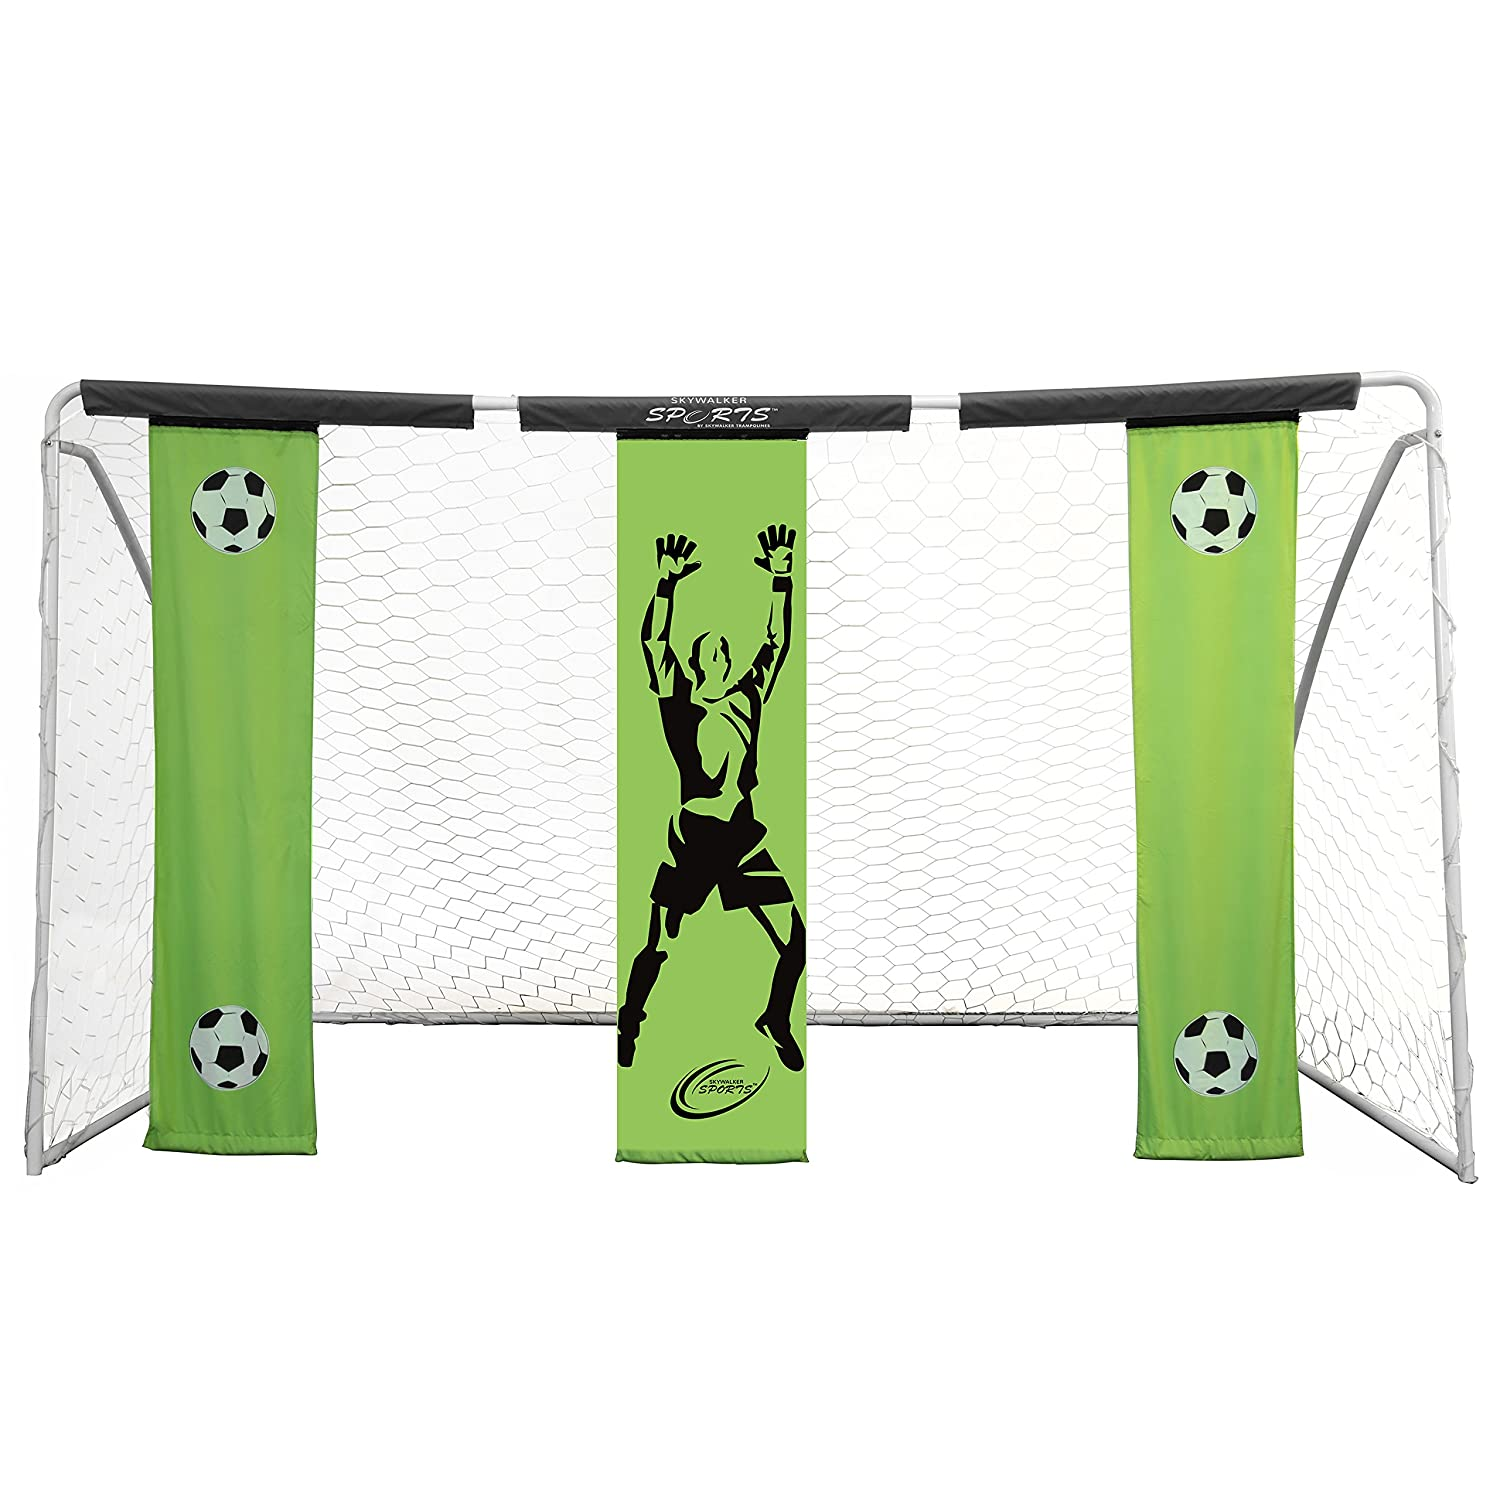 Skywalker Sports Soccer Goal with Practiceバナー B01FKXJ9QC 12' x 7'|グリーン グリーン 12' x 7'